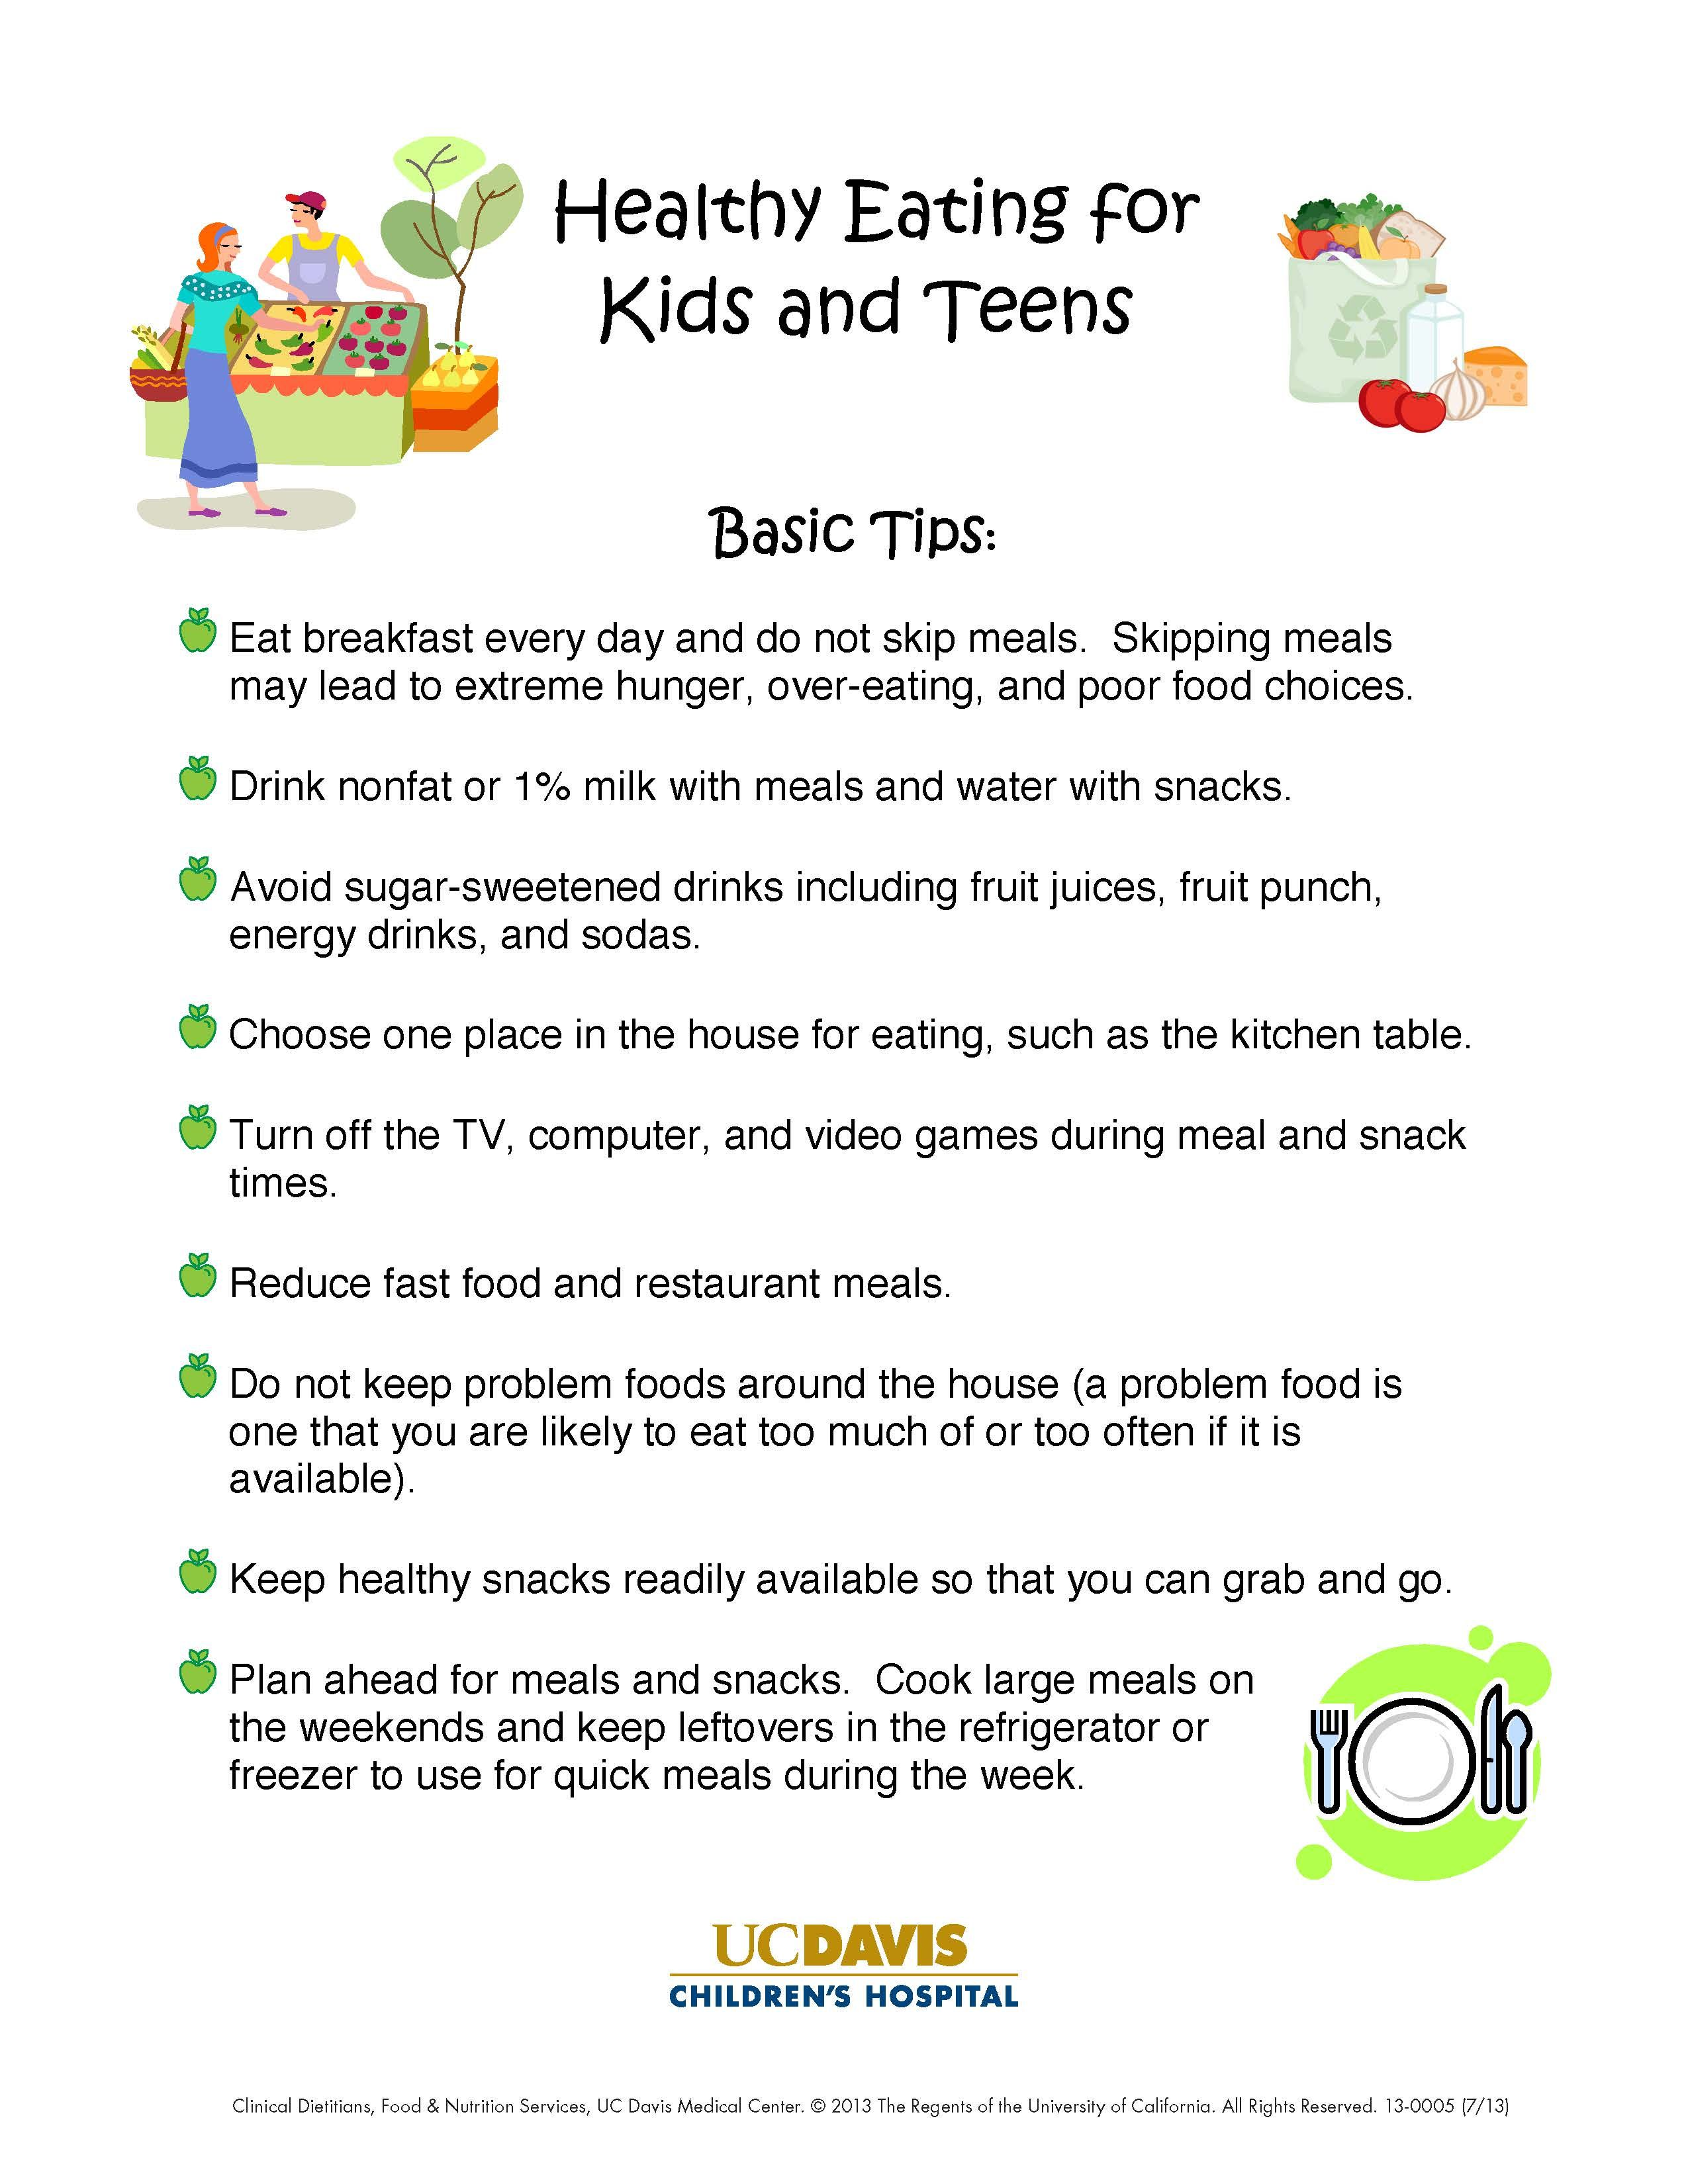 Healthy Diets for Teens: 3 Easy Tips You Have Forgotten